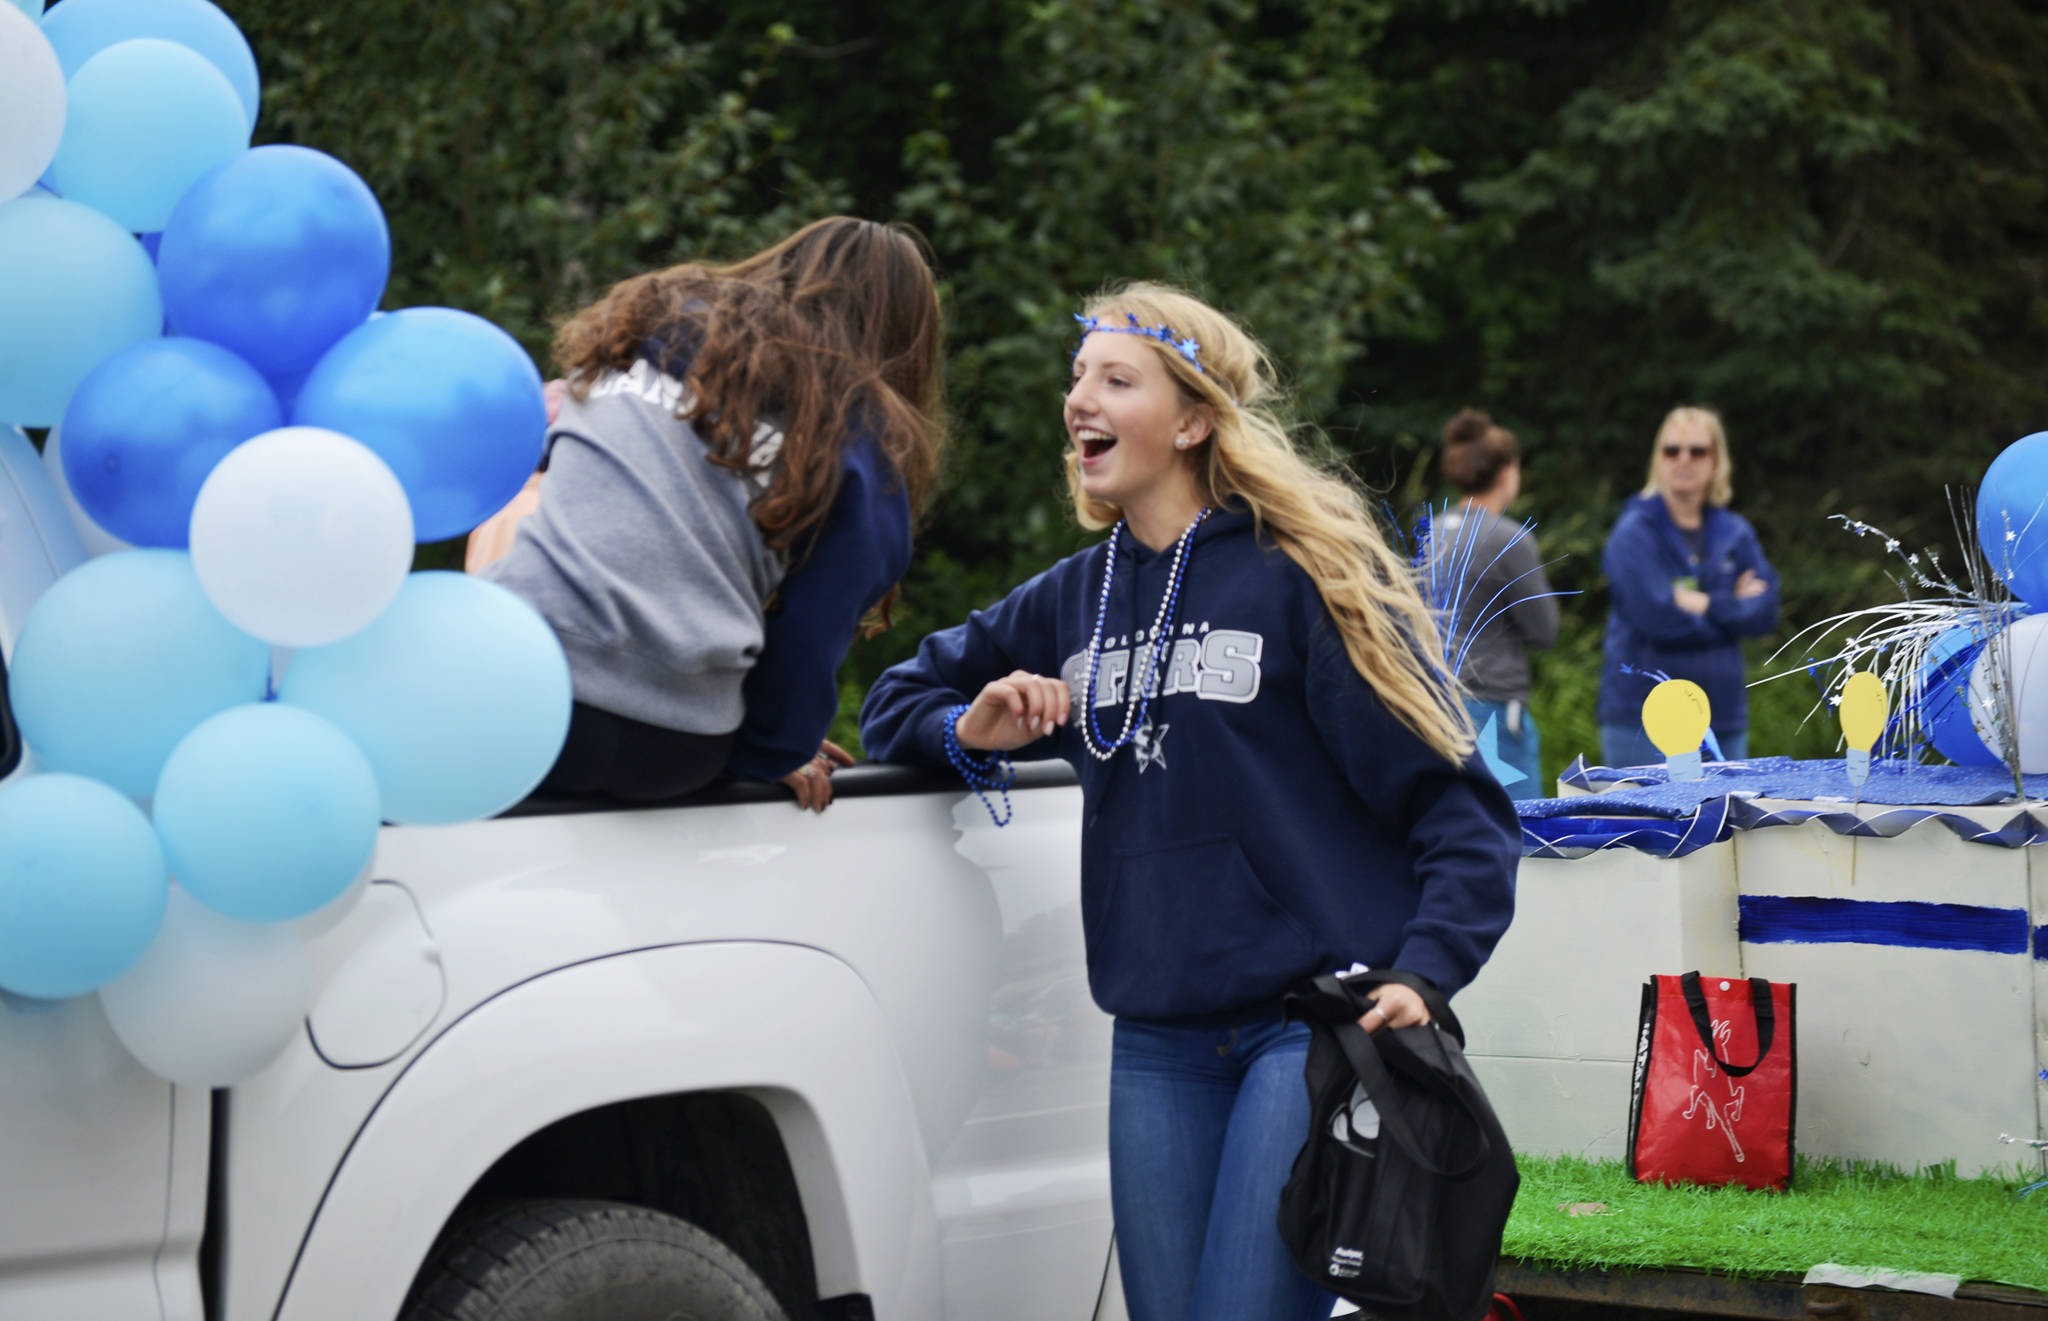 Participants in Soldotna High School's float in the Progress Days parade chat as they make their way down Marydale Avenue on Saturday, July 28, 2018 in Soldotna, Alaska. The parade kicks off the weekend-long event celebrating Soldotna's history, with a market on Saturday and Sunday in Soldotna Creek Park and a concert Saturday night followed by a free community barbecue Sunday. (Photo by Elizabeth Earl/Peninsula Clarion)